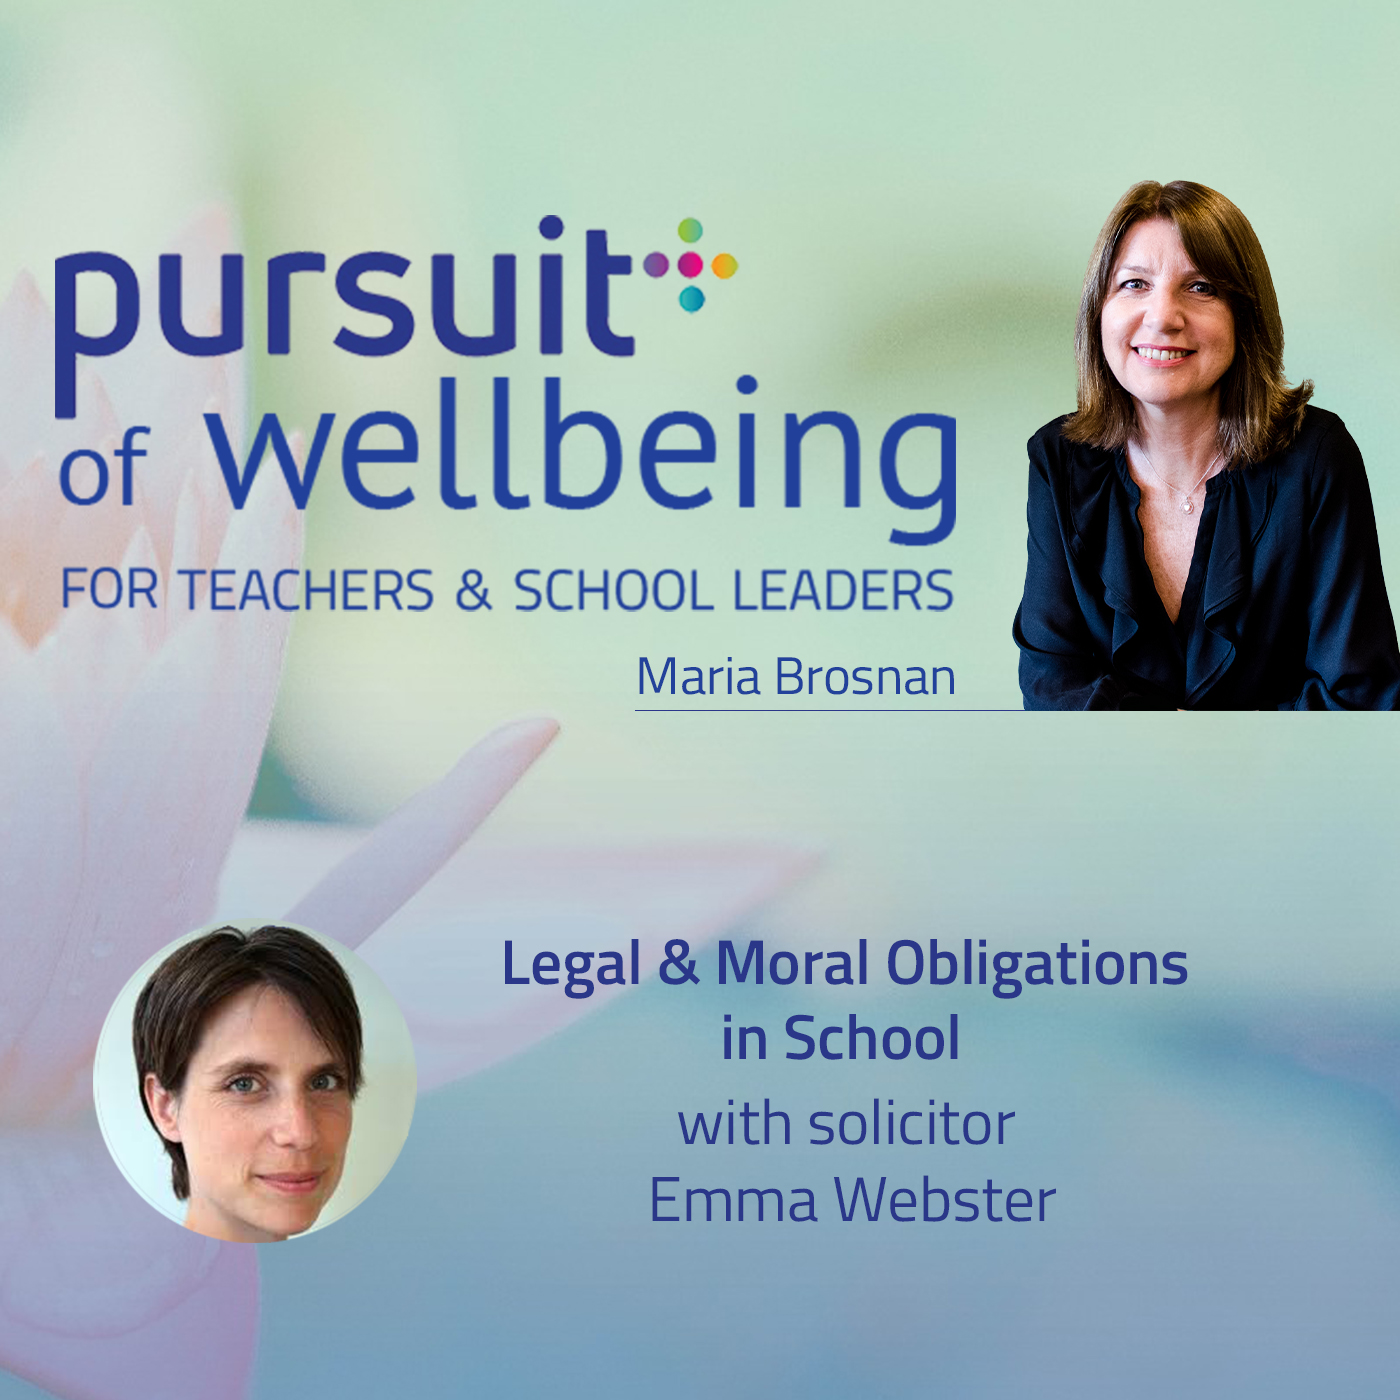 Legal and Moral Obligations in School with Emma Webster